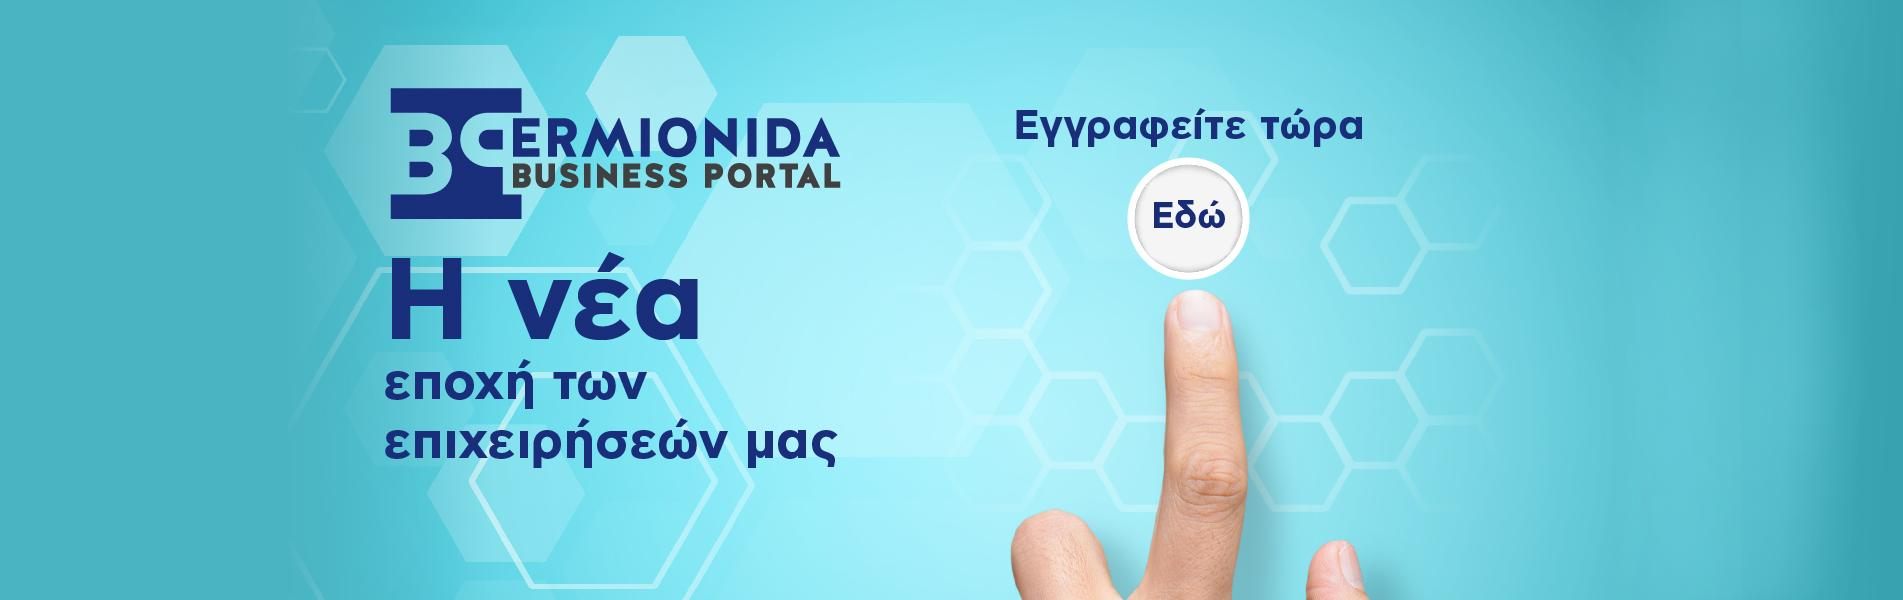 Ermionida Business portal